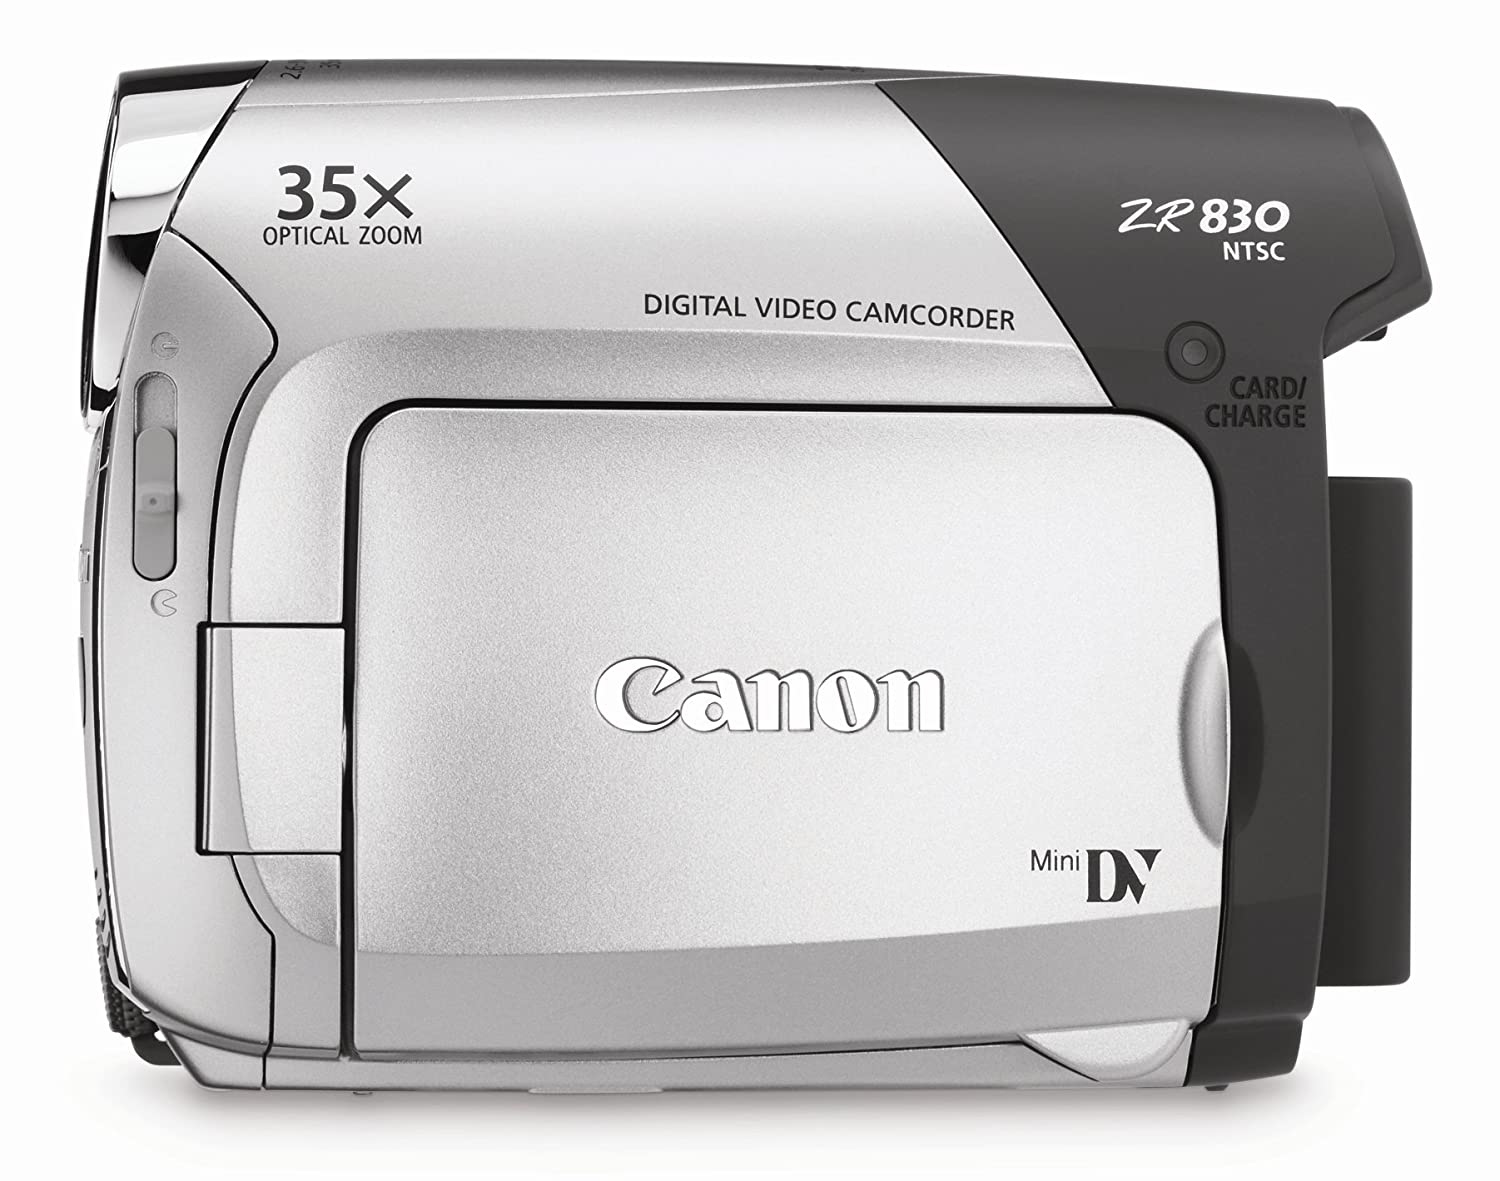 CANON ZR830 WINDOWS 7 DRIVERS DOWNLOAD